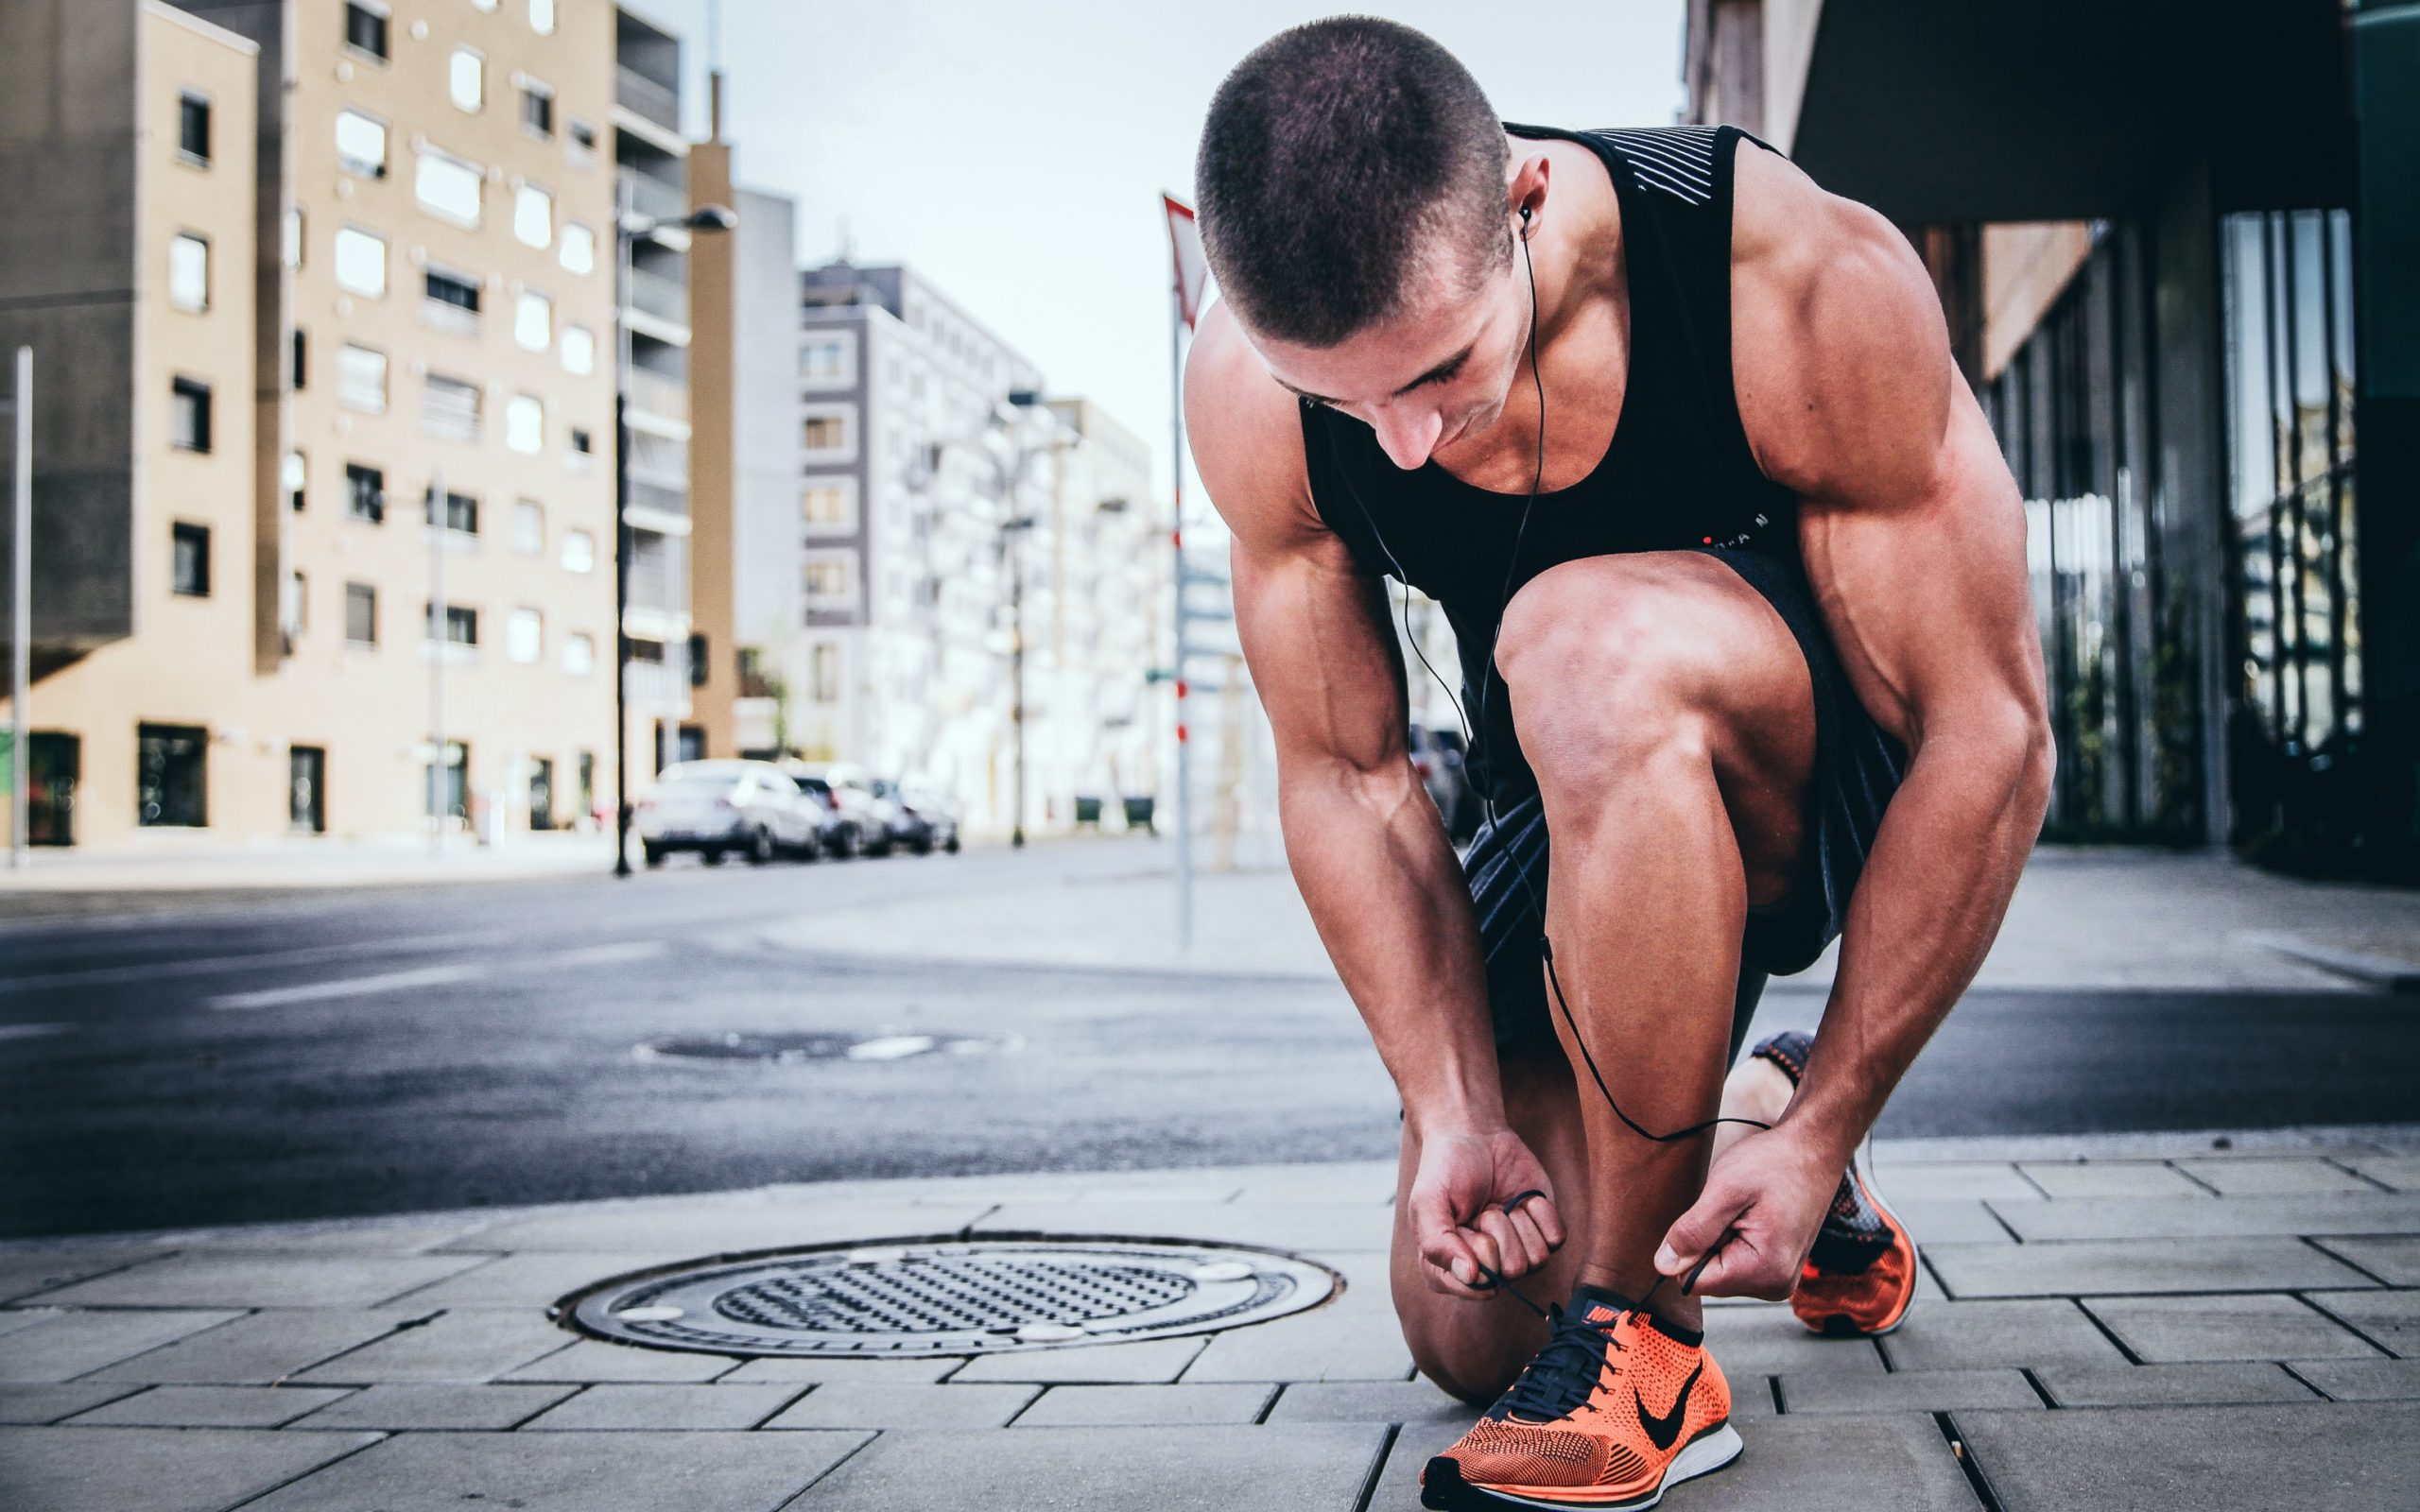 A runner ties his Nike shoes before a long run.